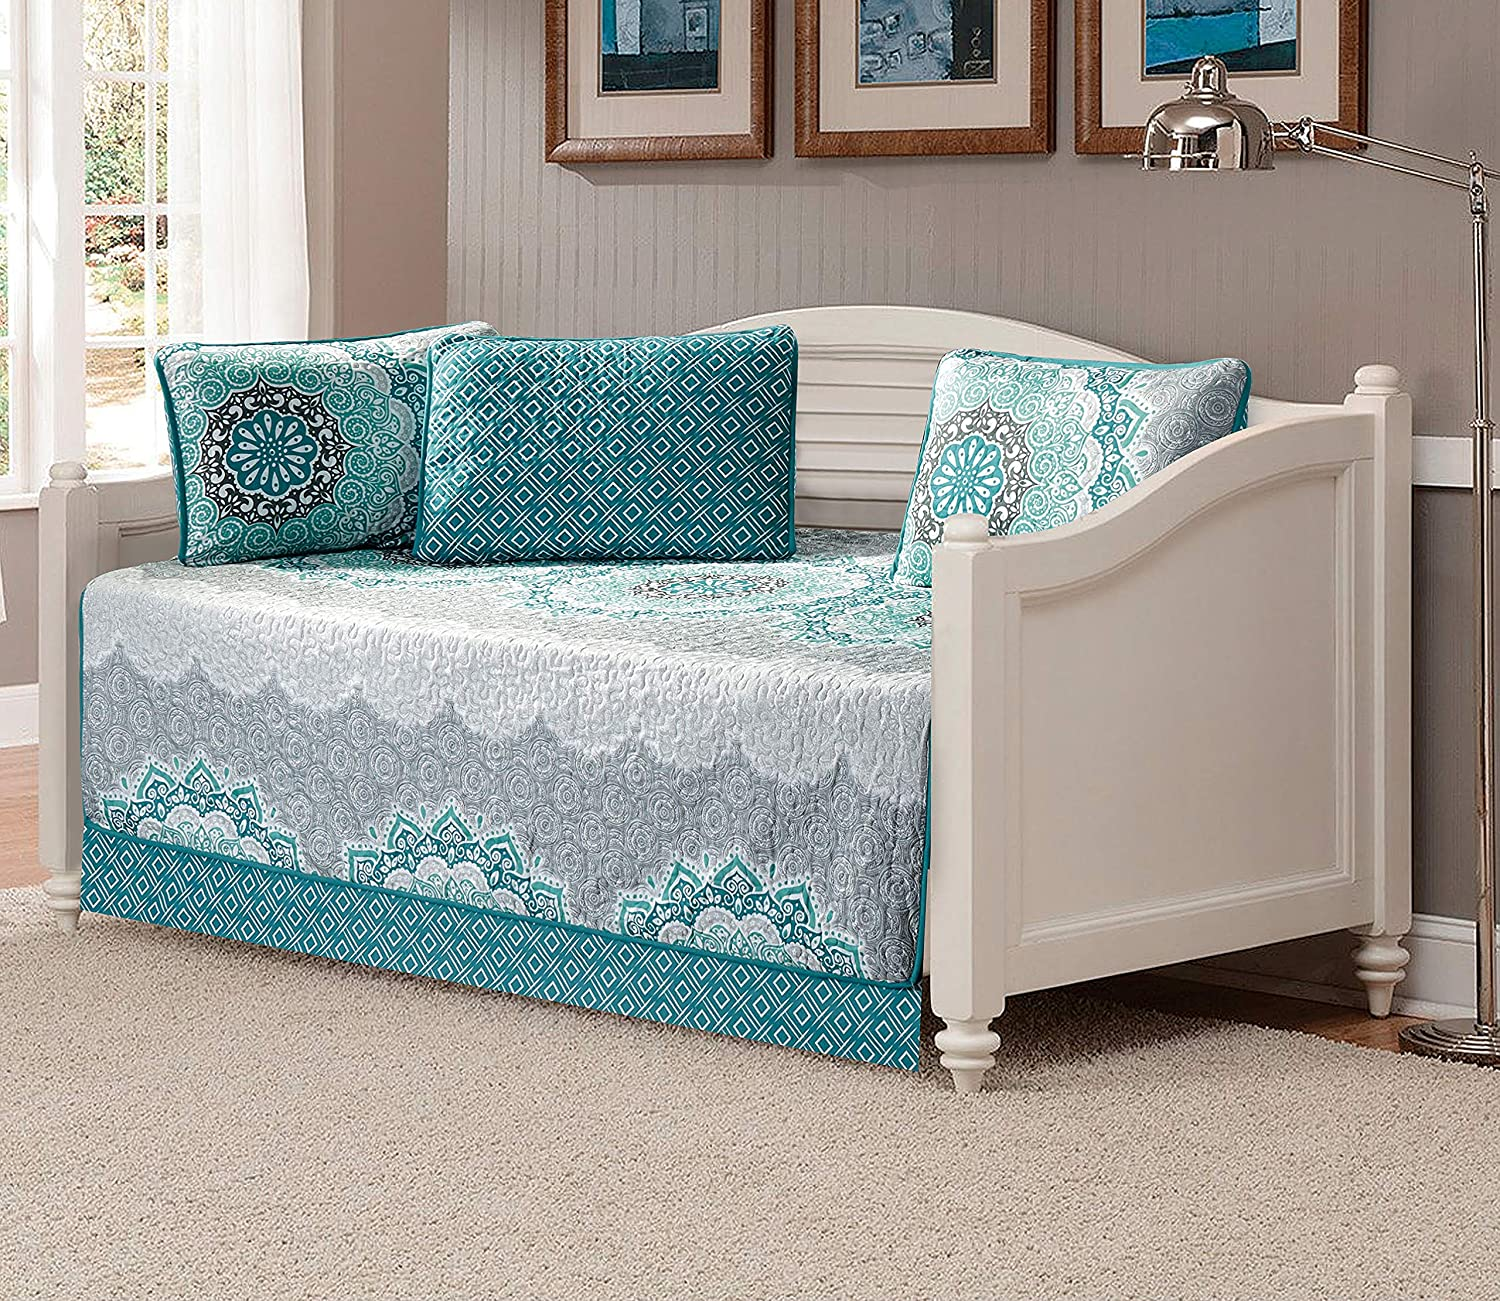 Linen Plus 5pc Daybed Cover Set Quilted Bedspread Floral Turquoise Teal Aqua Coastal Plain/Gray Green New